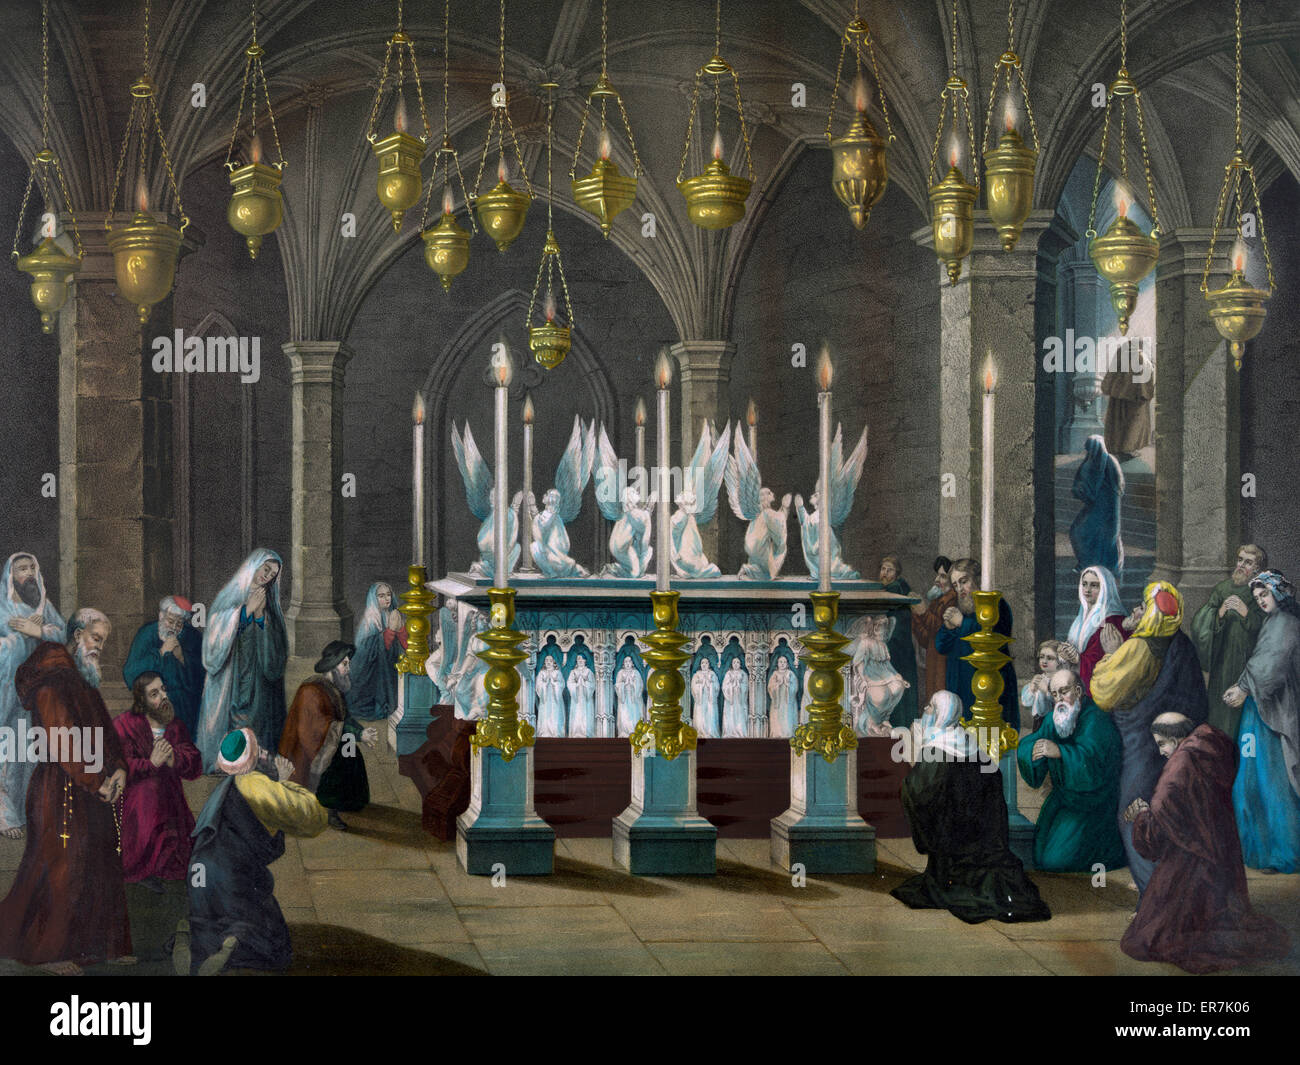 The sepulchre of Christ. - Stock Image